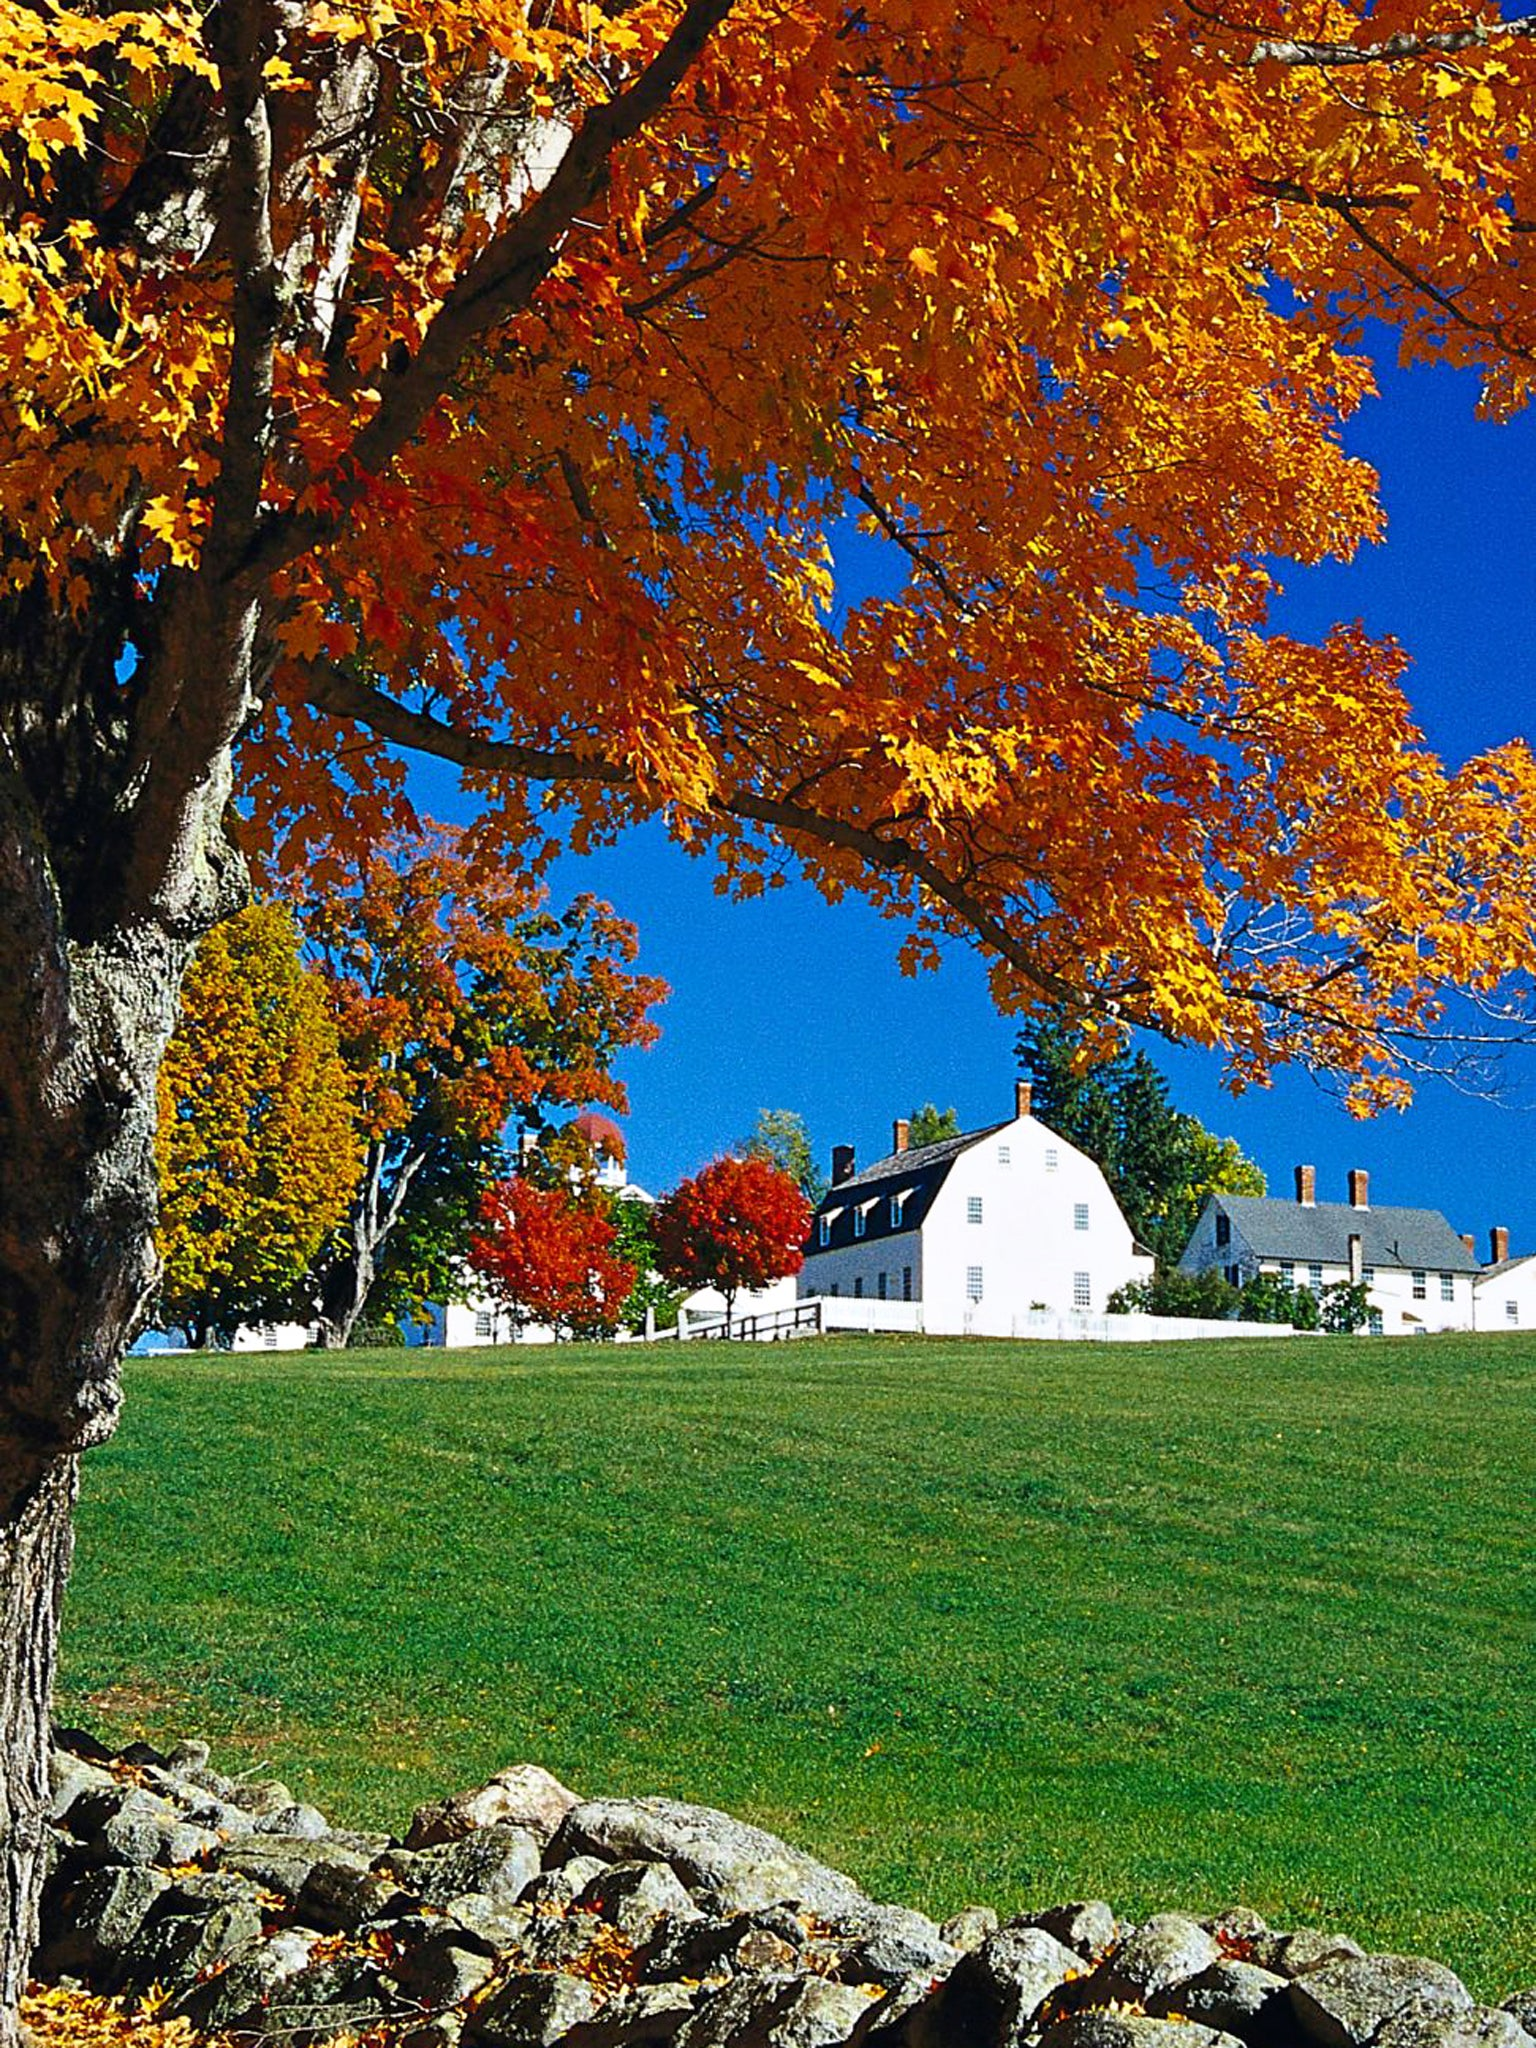 New England in the fall | The Independent